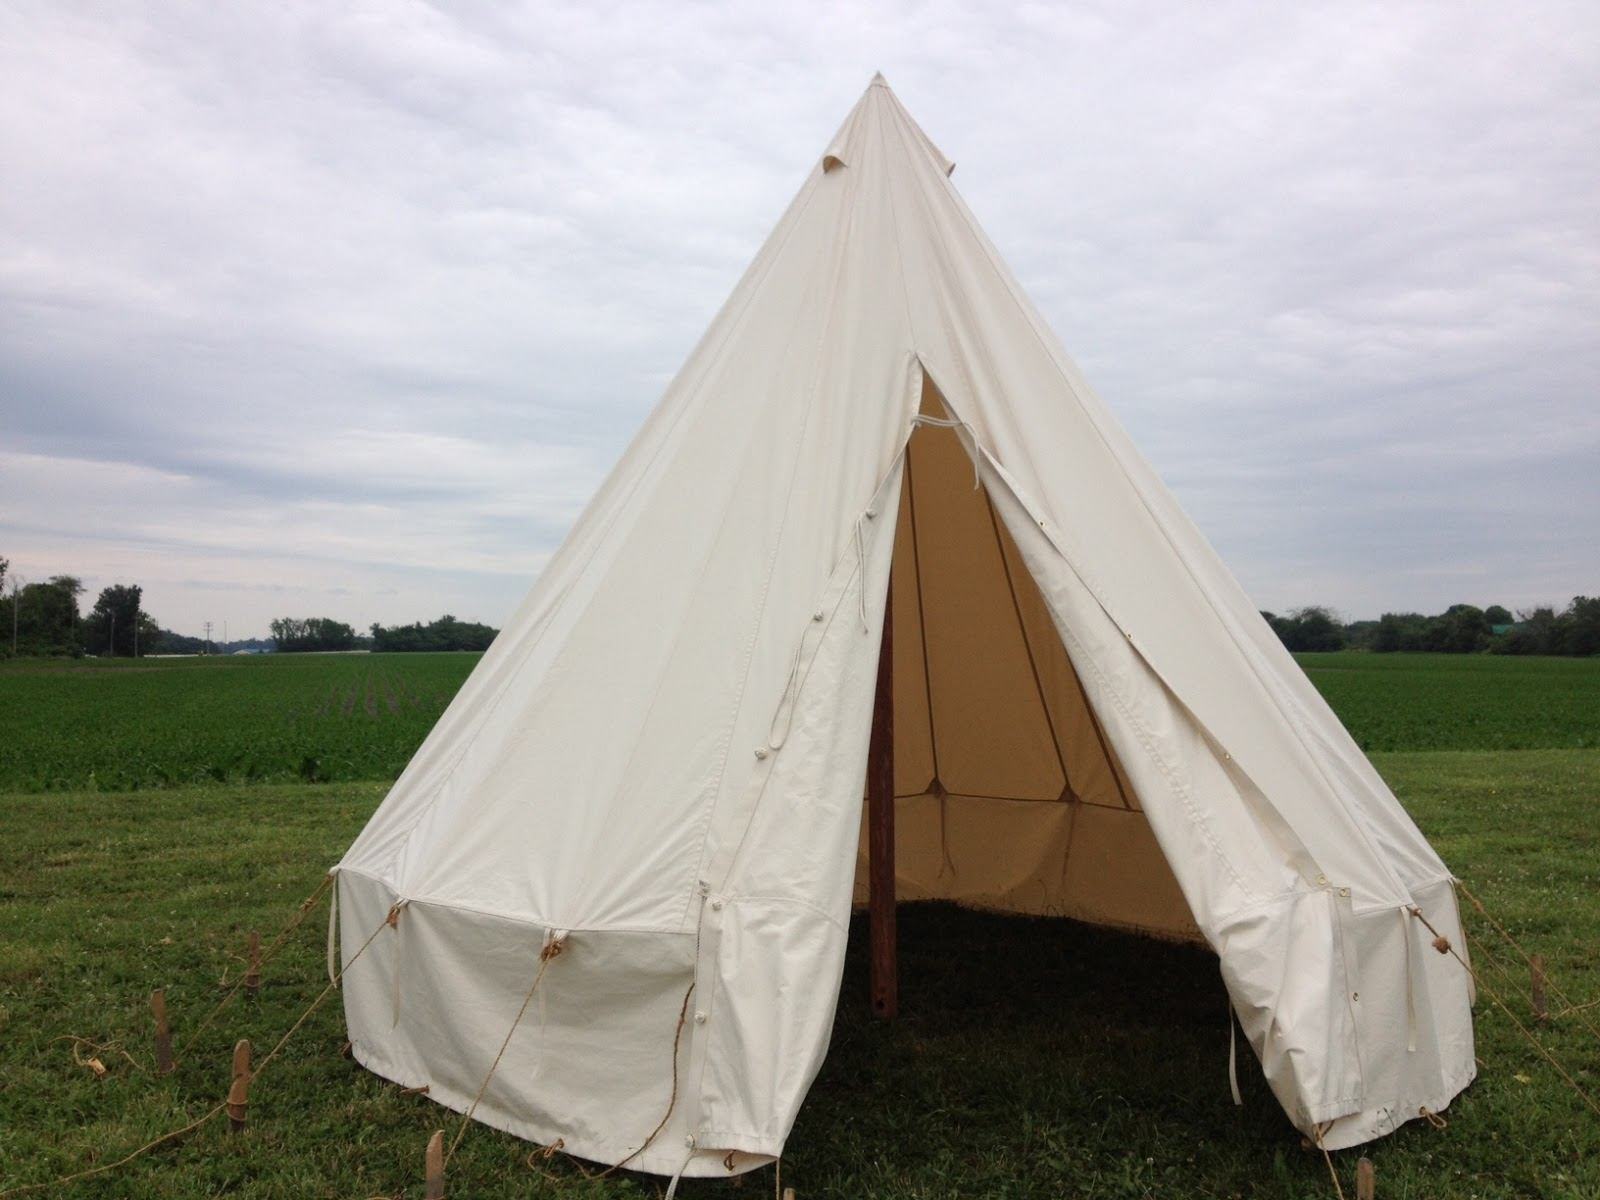 Ex&le of a WWI British Bell Tents reproduced for the ANZAC GIRLS Australian TV Series & World War One Tents from Armbruster | Armbruster Tent Maker